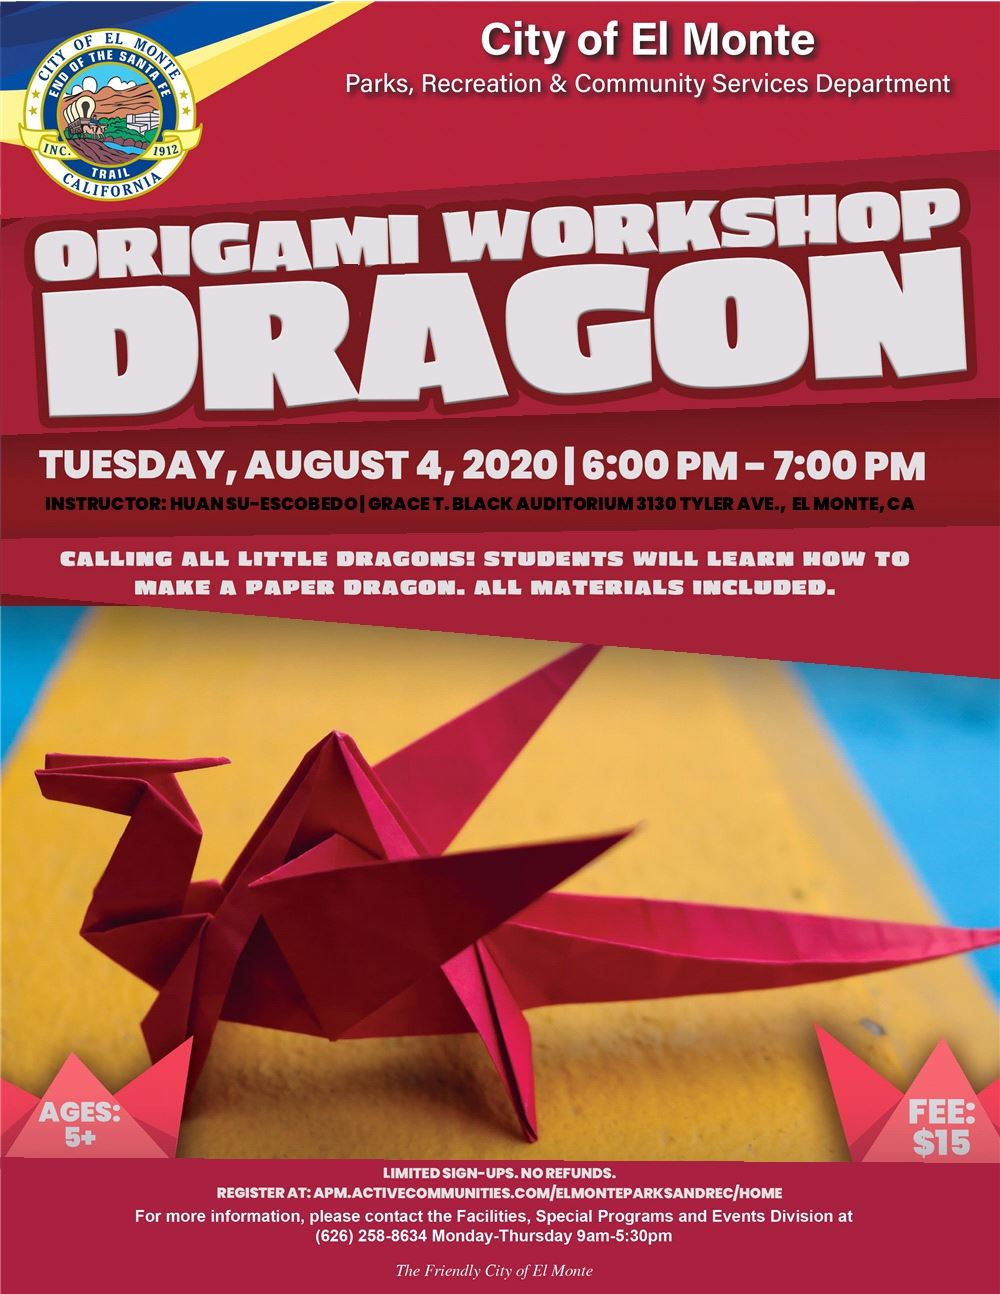 Origami_Workshop_Dragons_020520_A Opens in new window